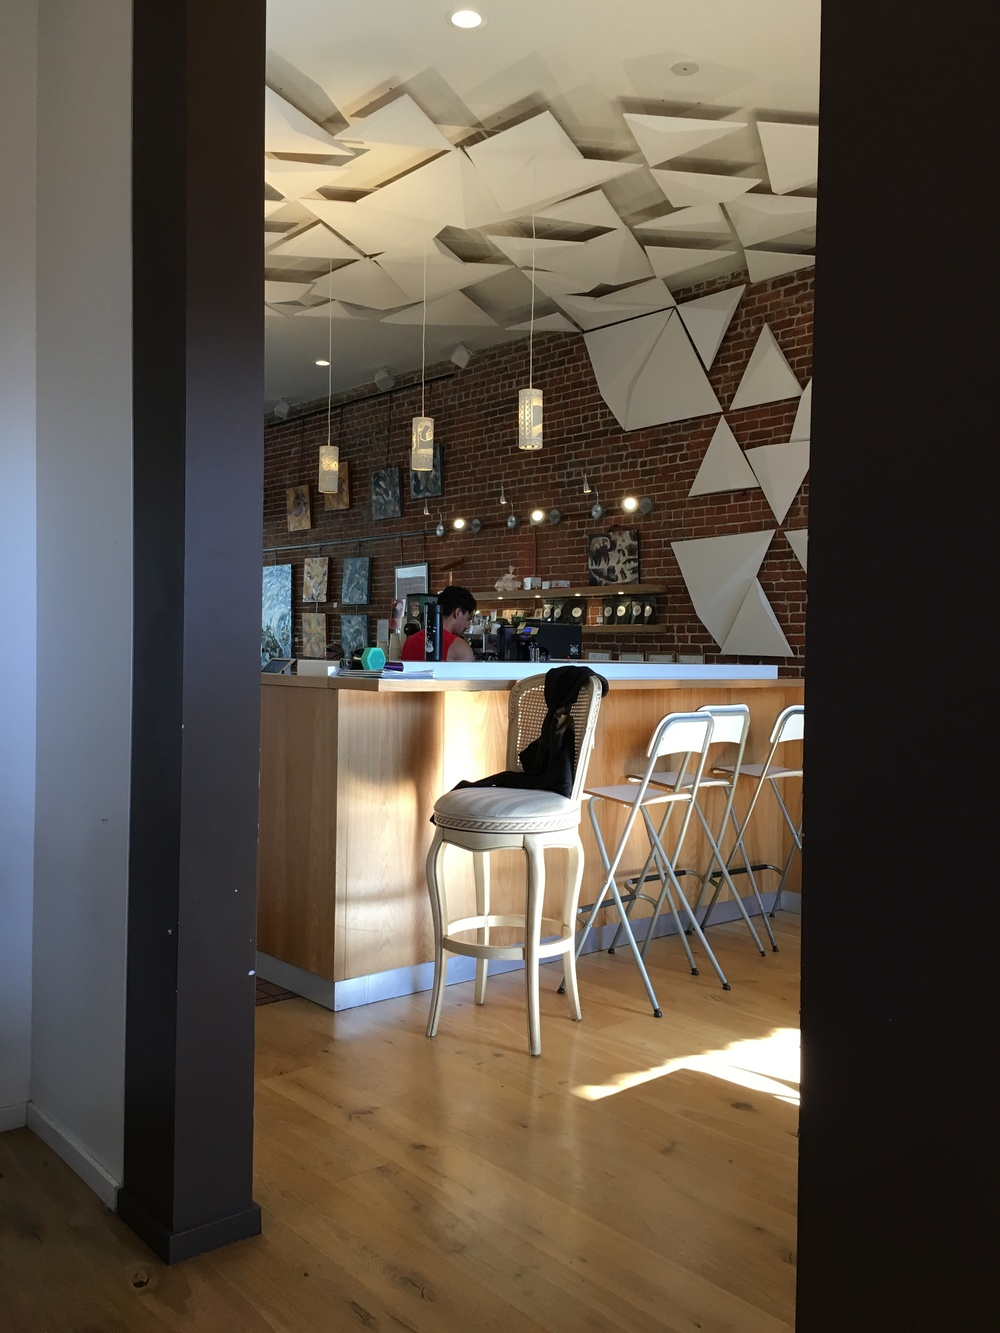 Looking from the back towards the front of the cafe